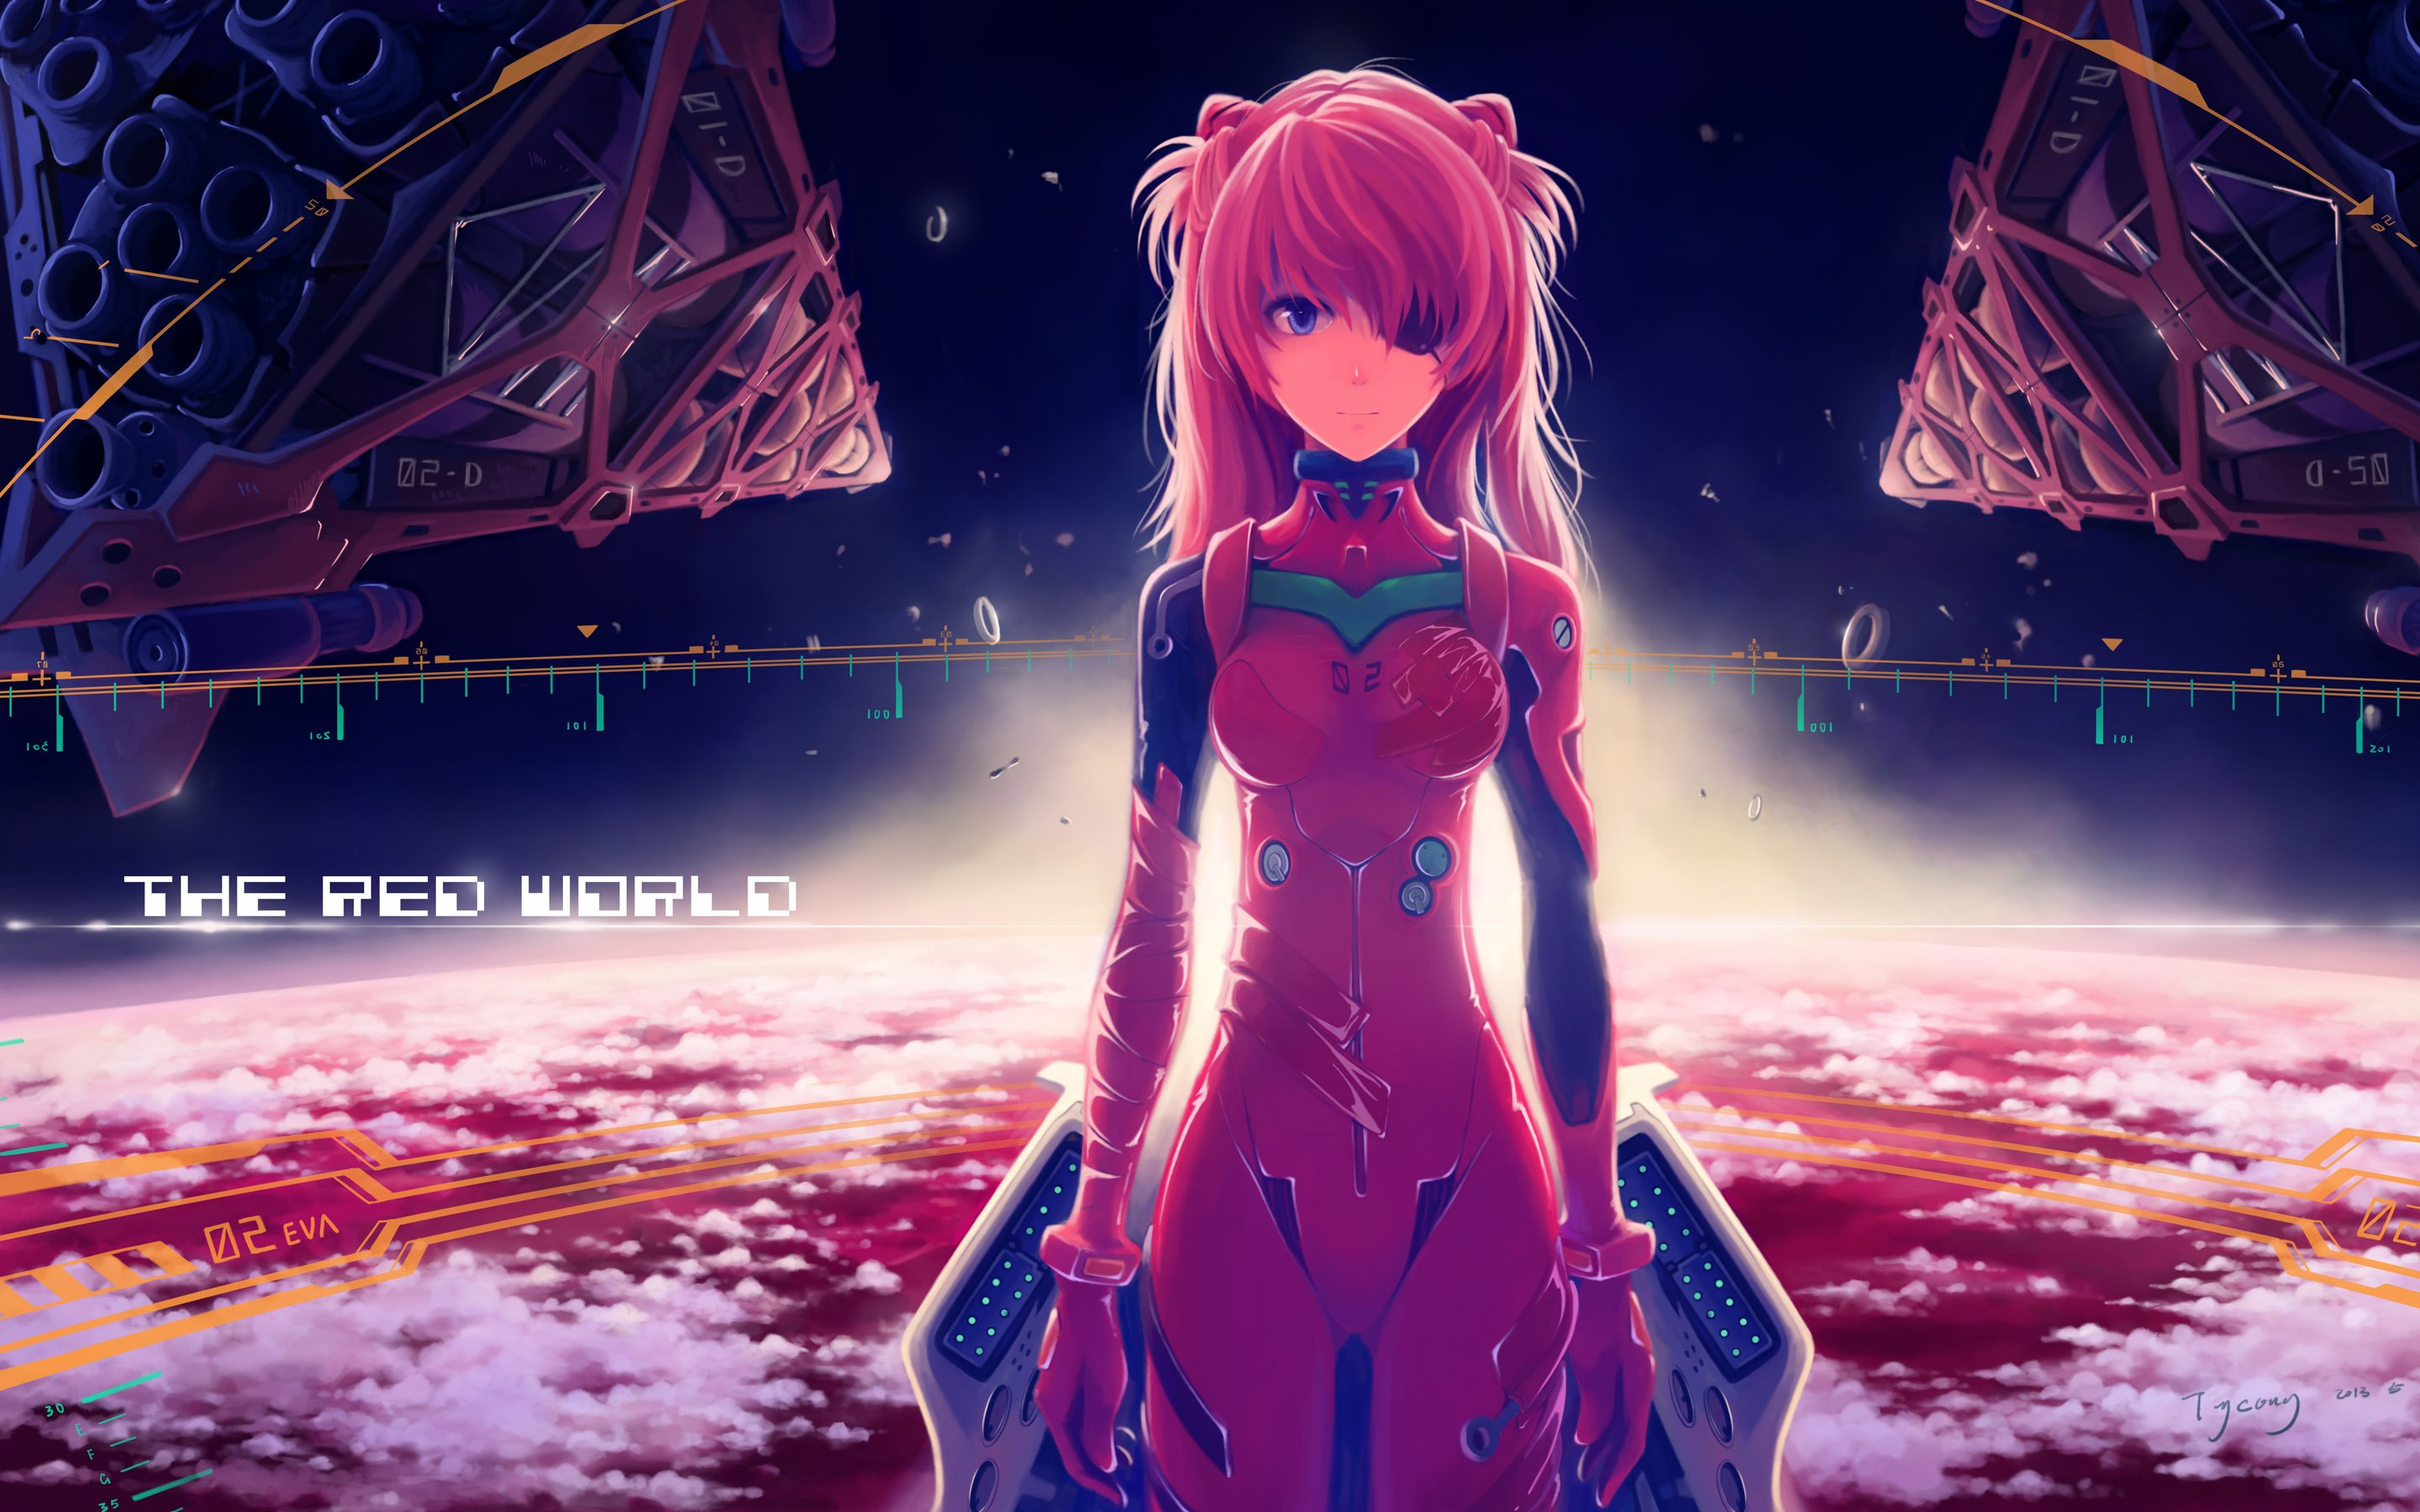 Asuka Langley Soryu Anime Girl Wallpapers HD Wallpapers 2880x1800